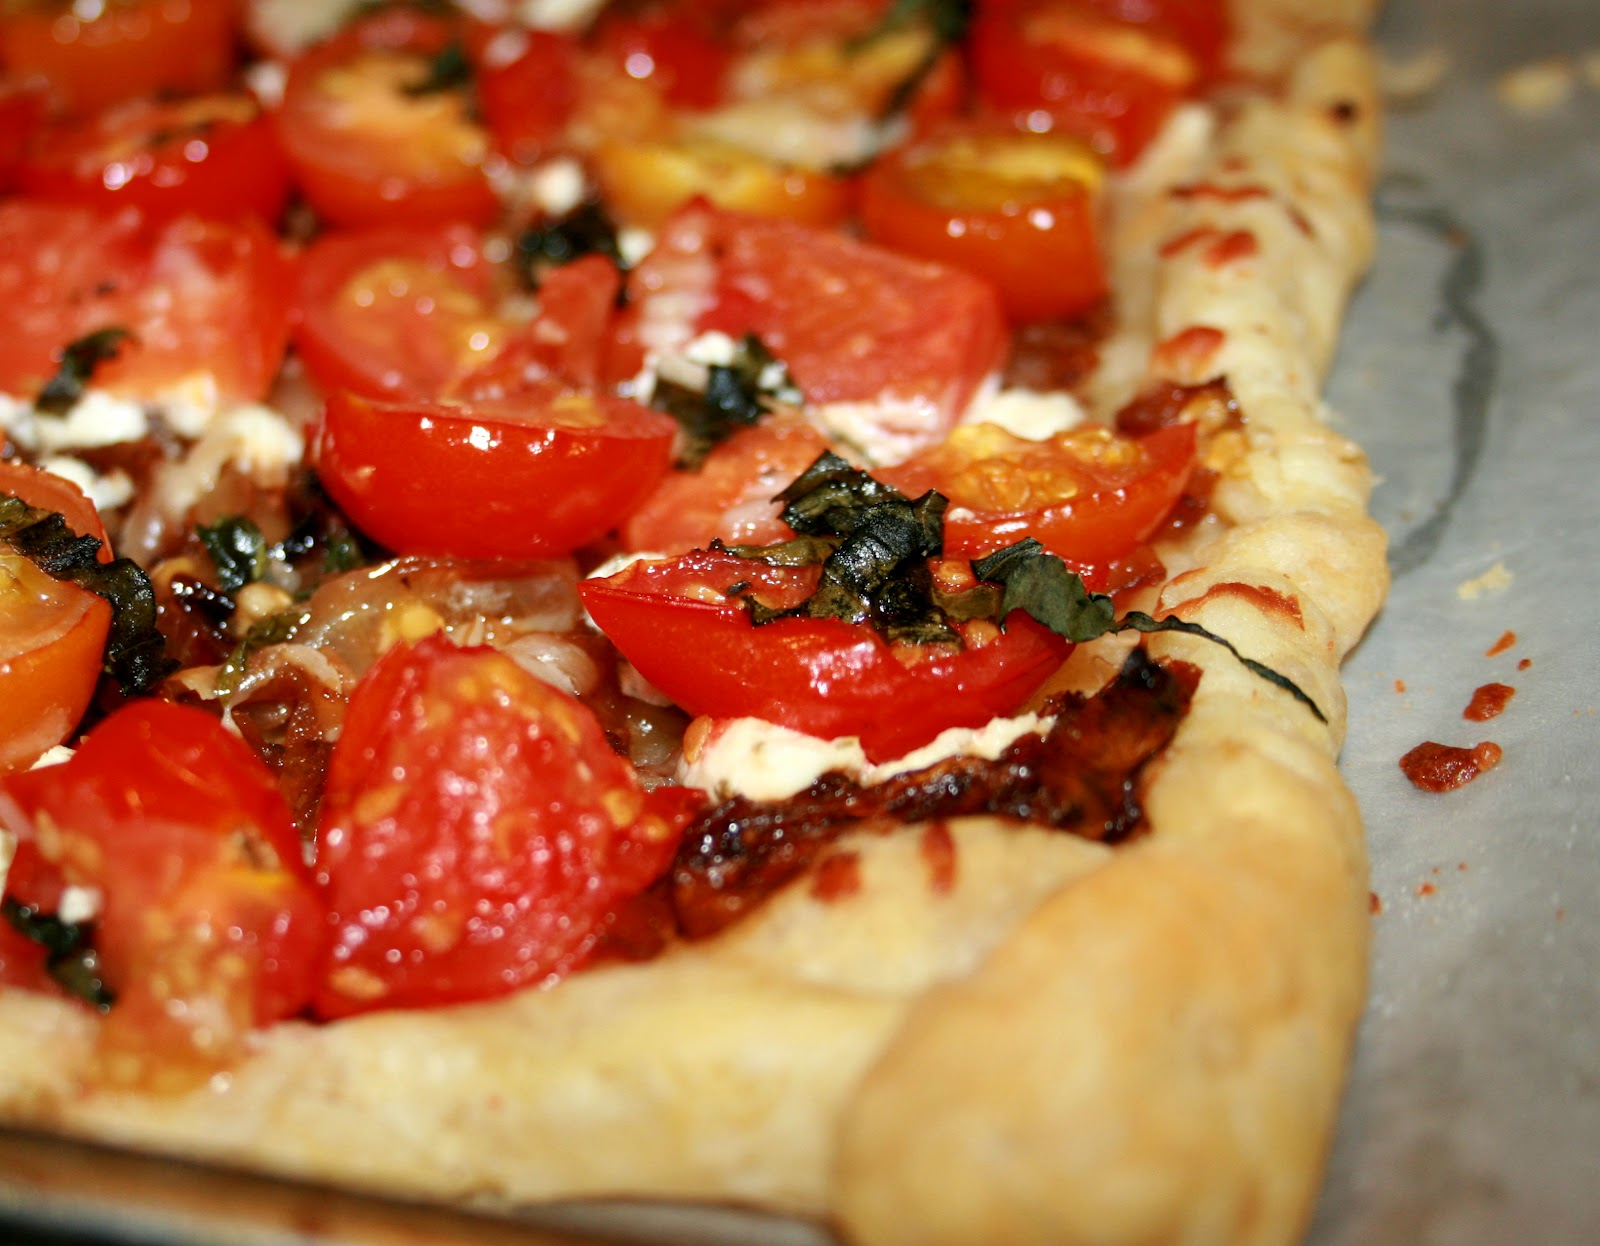 Sugar Spice Tomato And Goat Cheese Tart